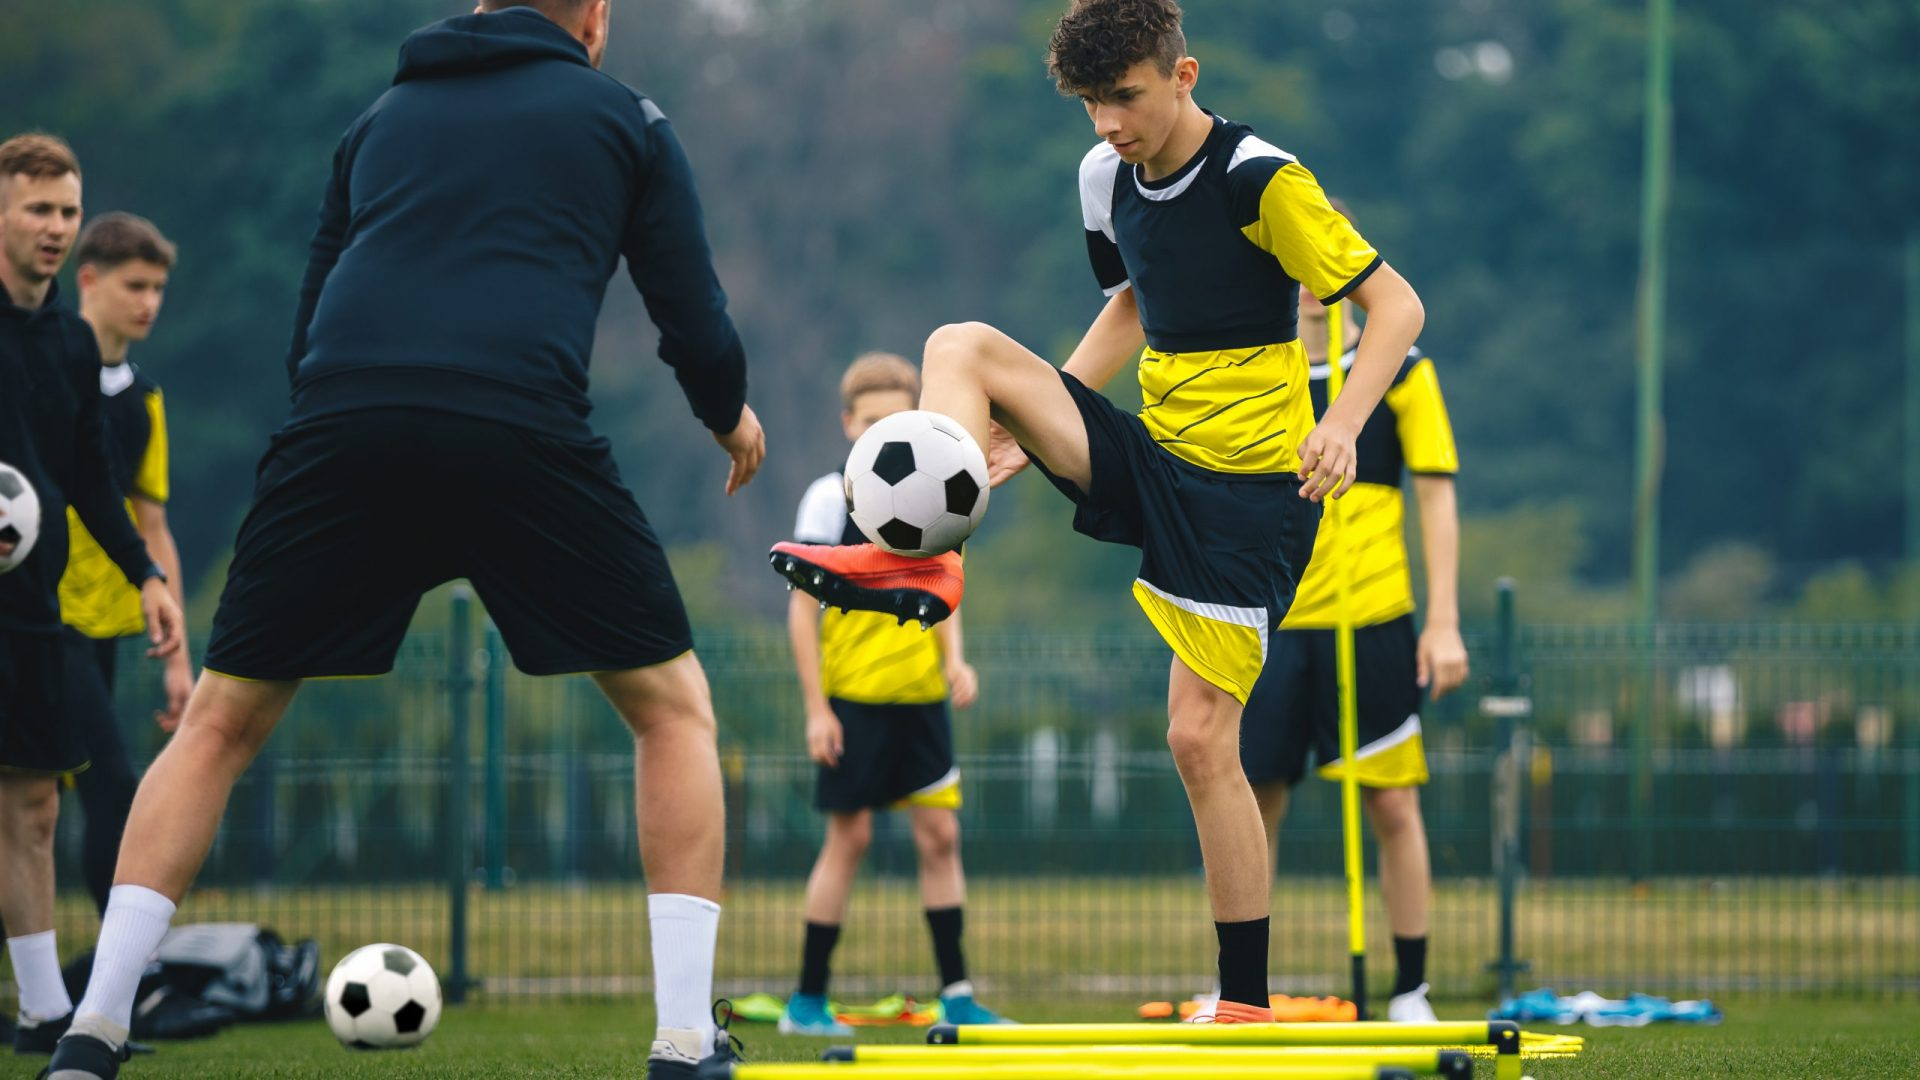 Teenagers,On,Soccer,Training,Camp.,Boys,Practice,Football,With,Young